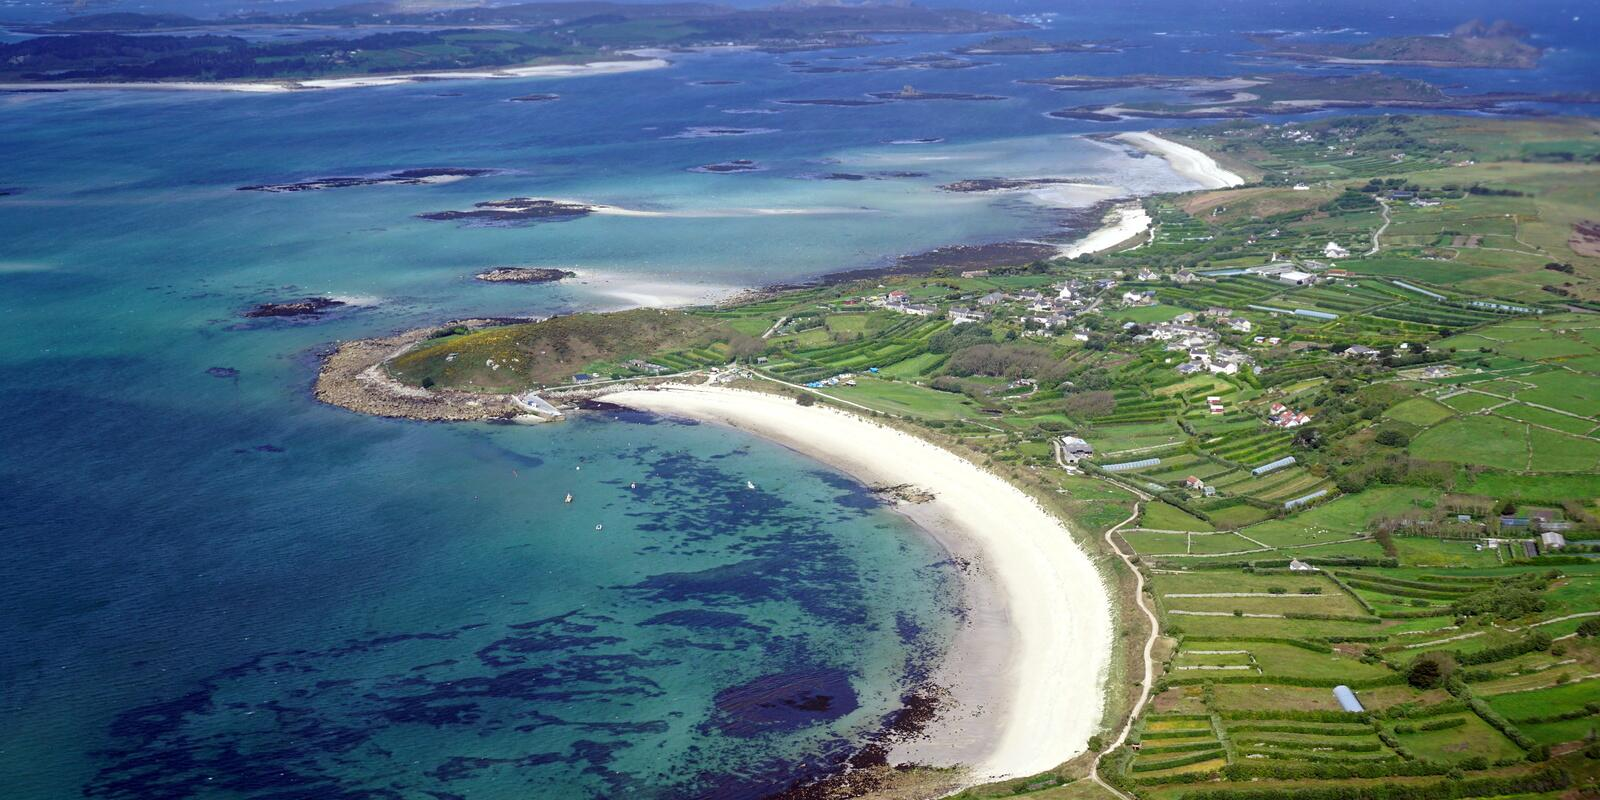 5 nights exploring the Isles of Scilly (on the south coast of England) - with a British skipper